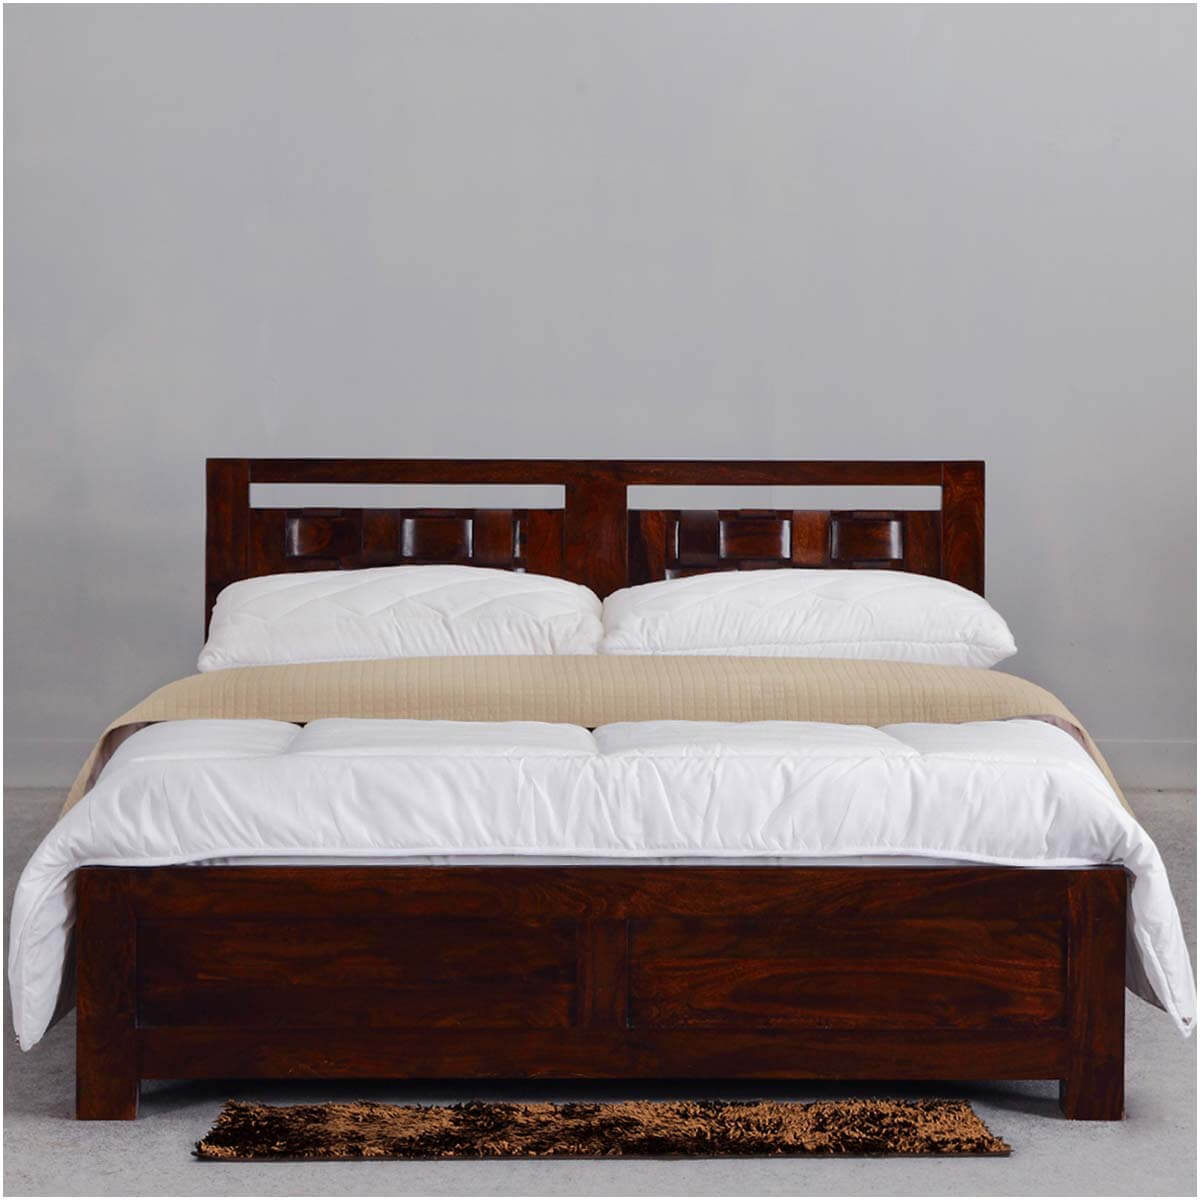 Modern Rustic Minnesota Solid Wood Platform Bed w Headboard